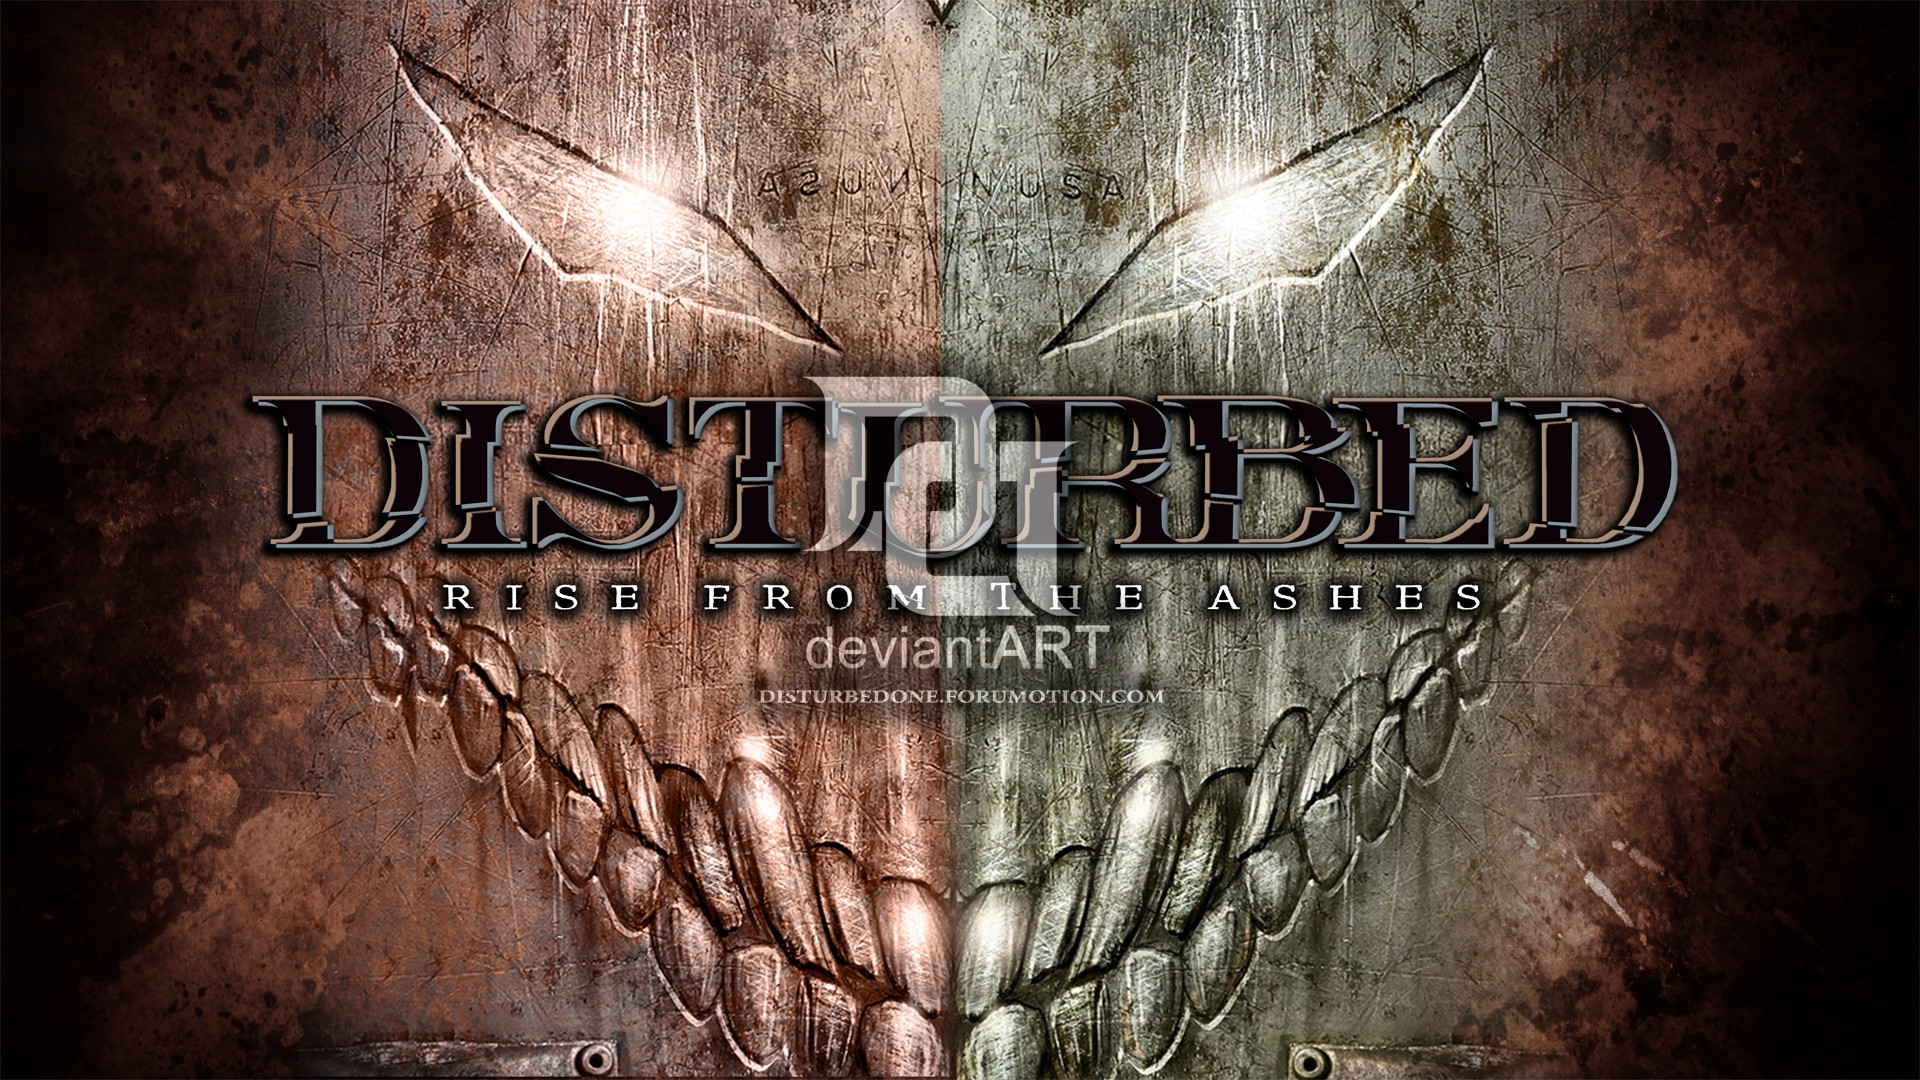 1920x1080 ... morbustelevision2 Disturbed - Rise From The Ashes by morbustelevision2